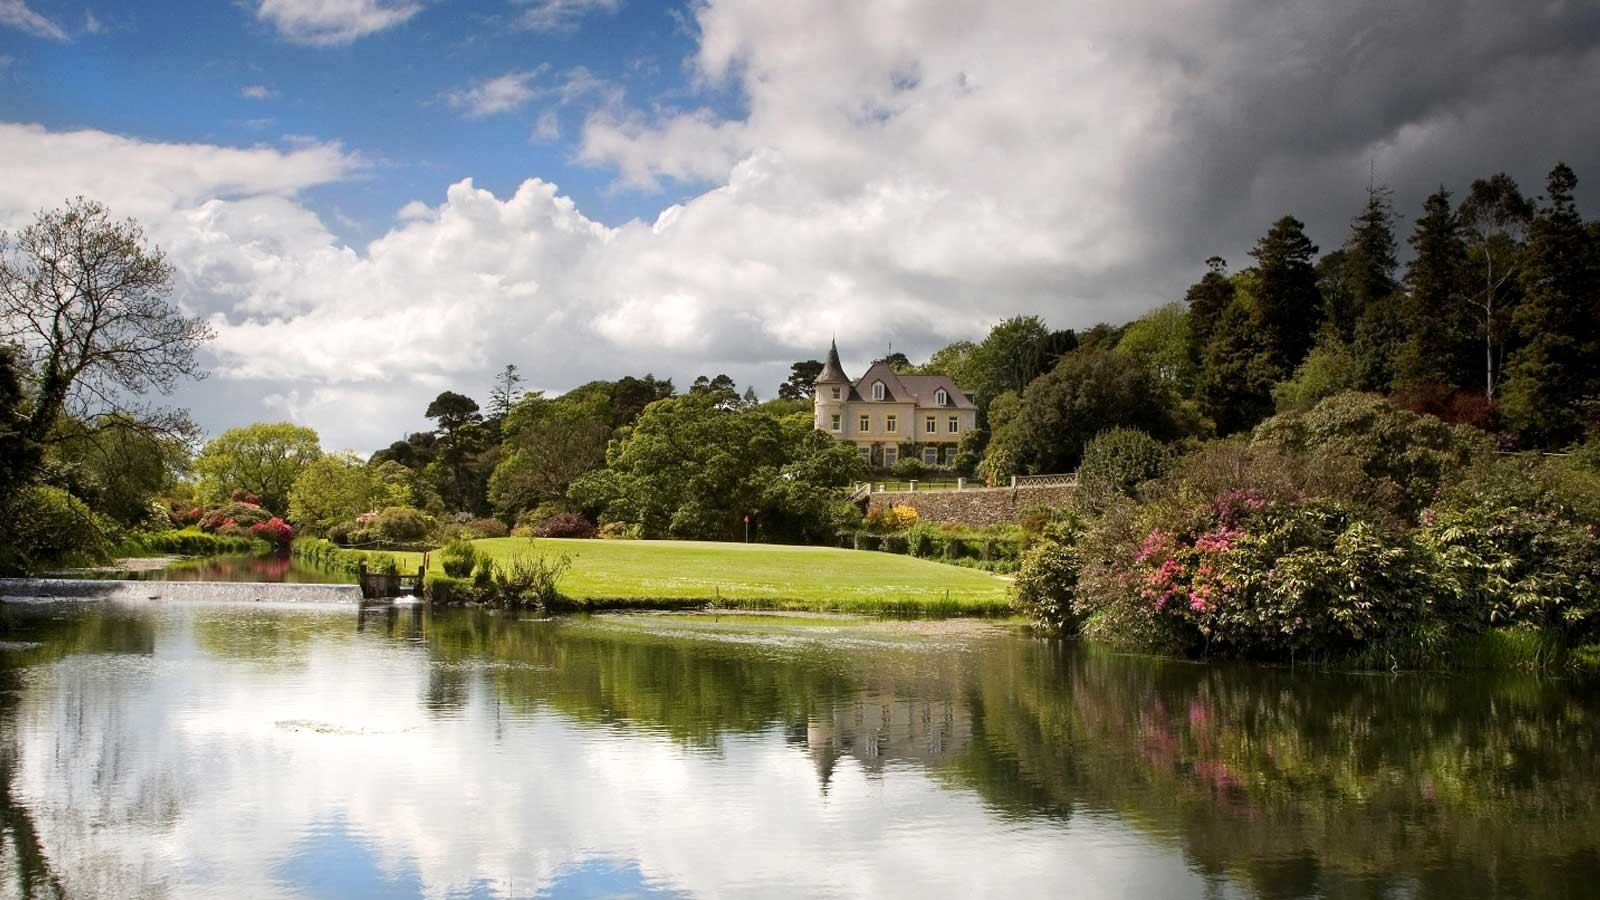 Lissalel House and Gardens - Historic West Cork 350-Acre Estate